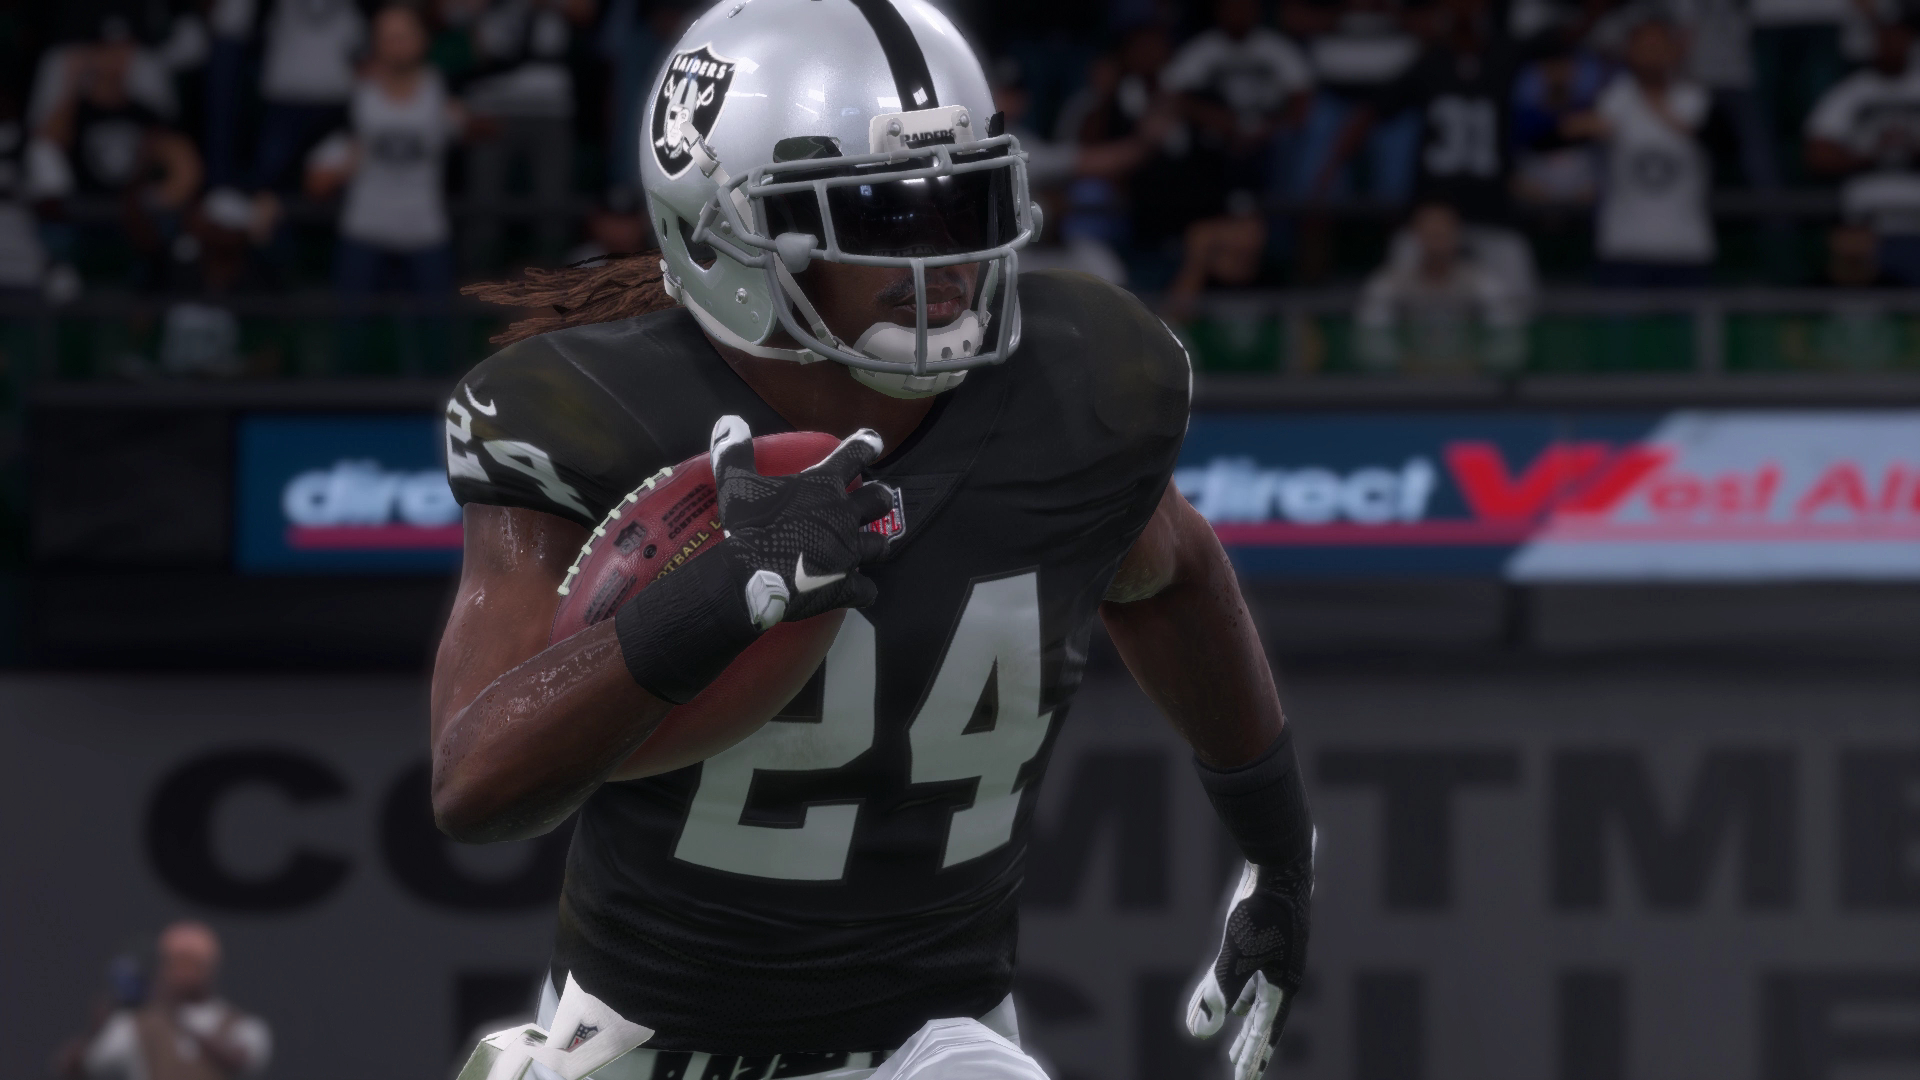 Madden NFL 18 Marshawn Lynch